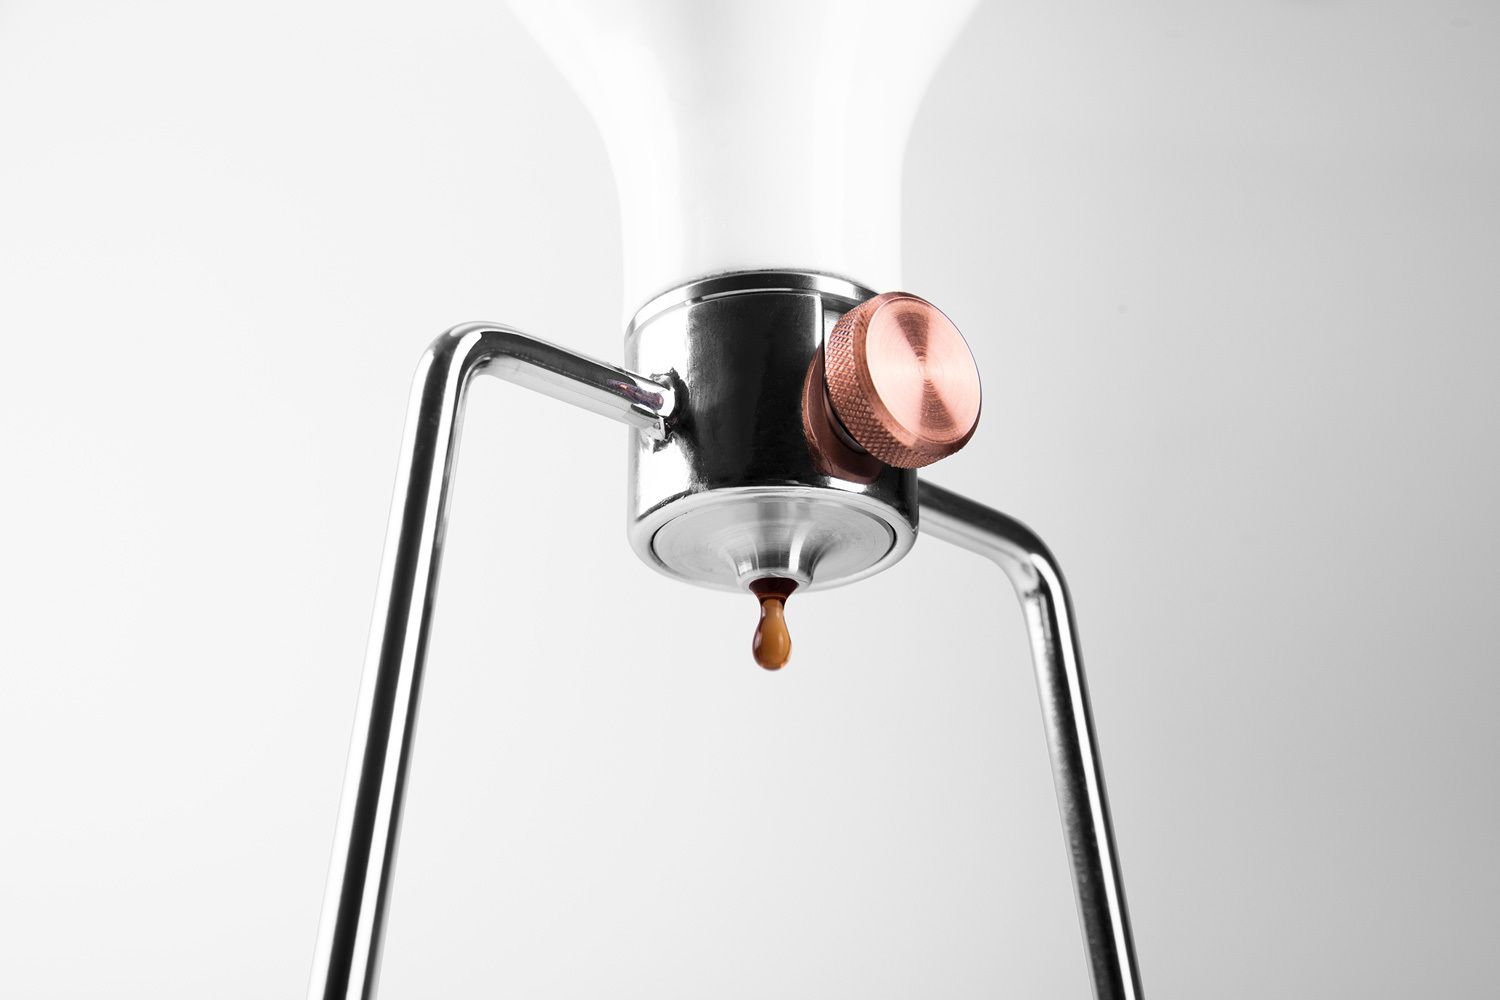 The GINA Smart Coffee Instrument Is Art for Your Kitchen